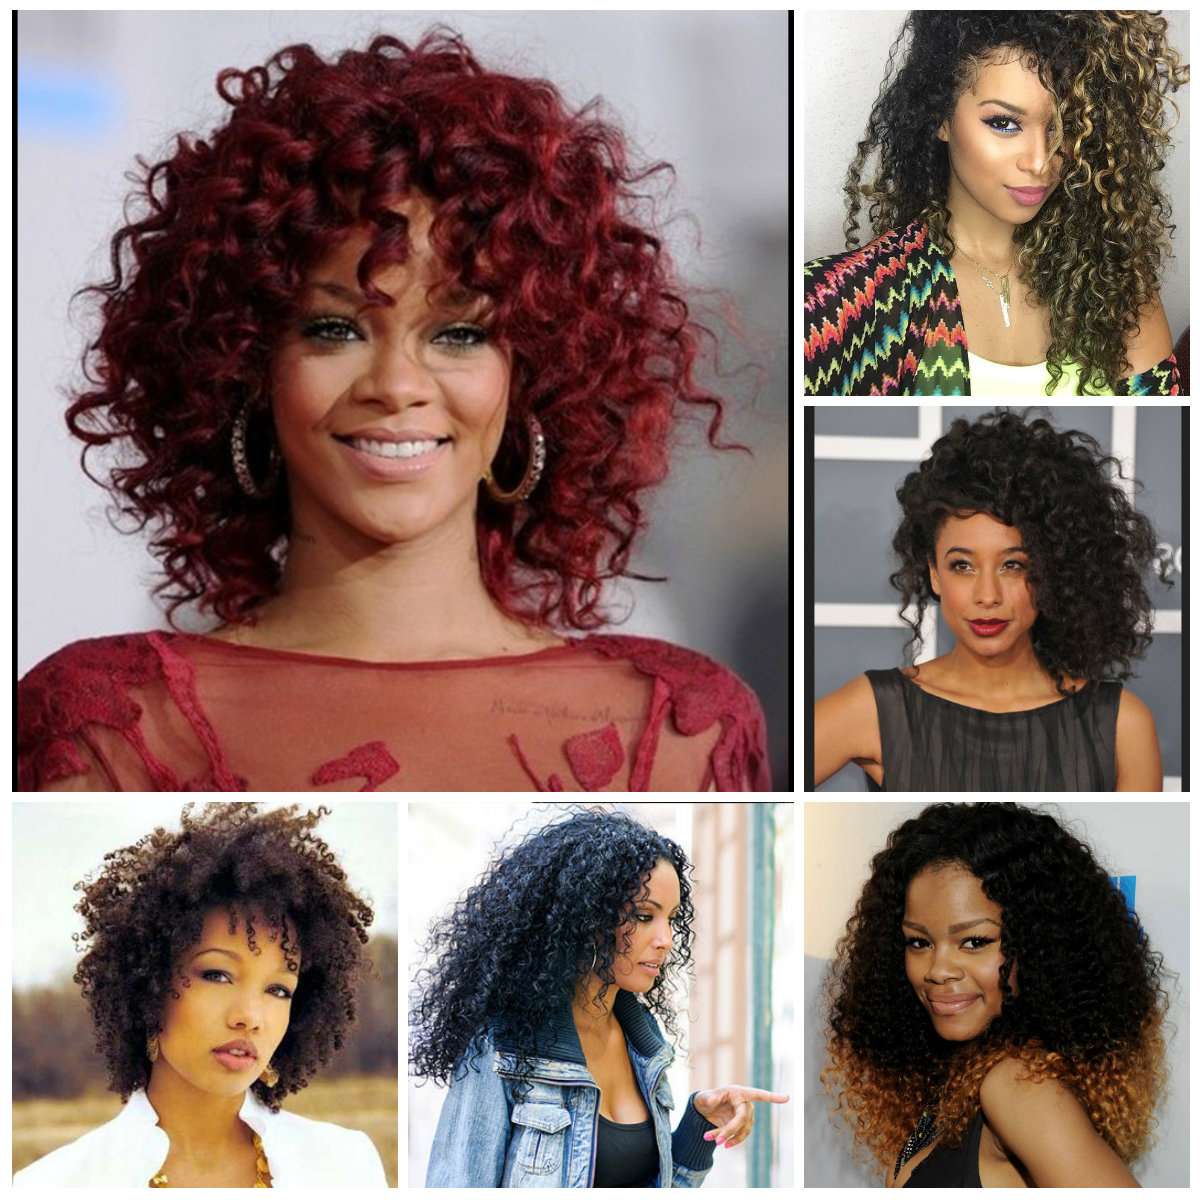 Big Natural Curly Hairstyles For Black Women (View 7 of 20)